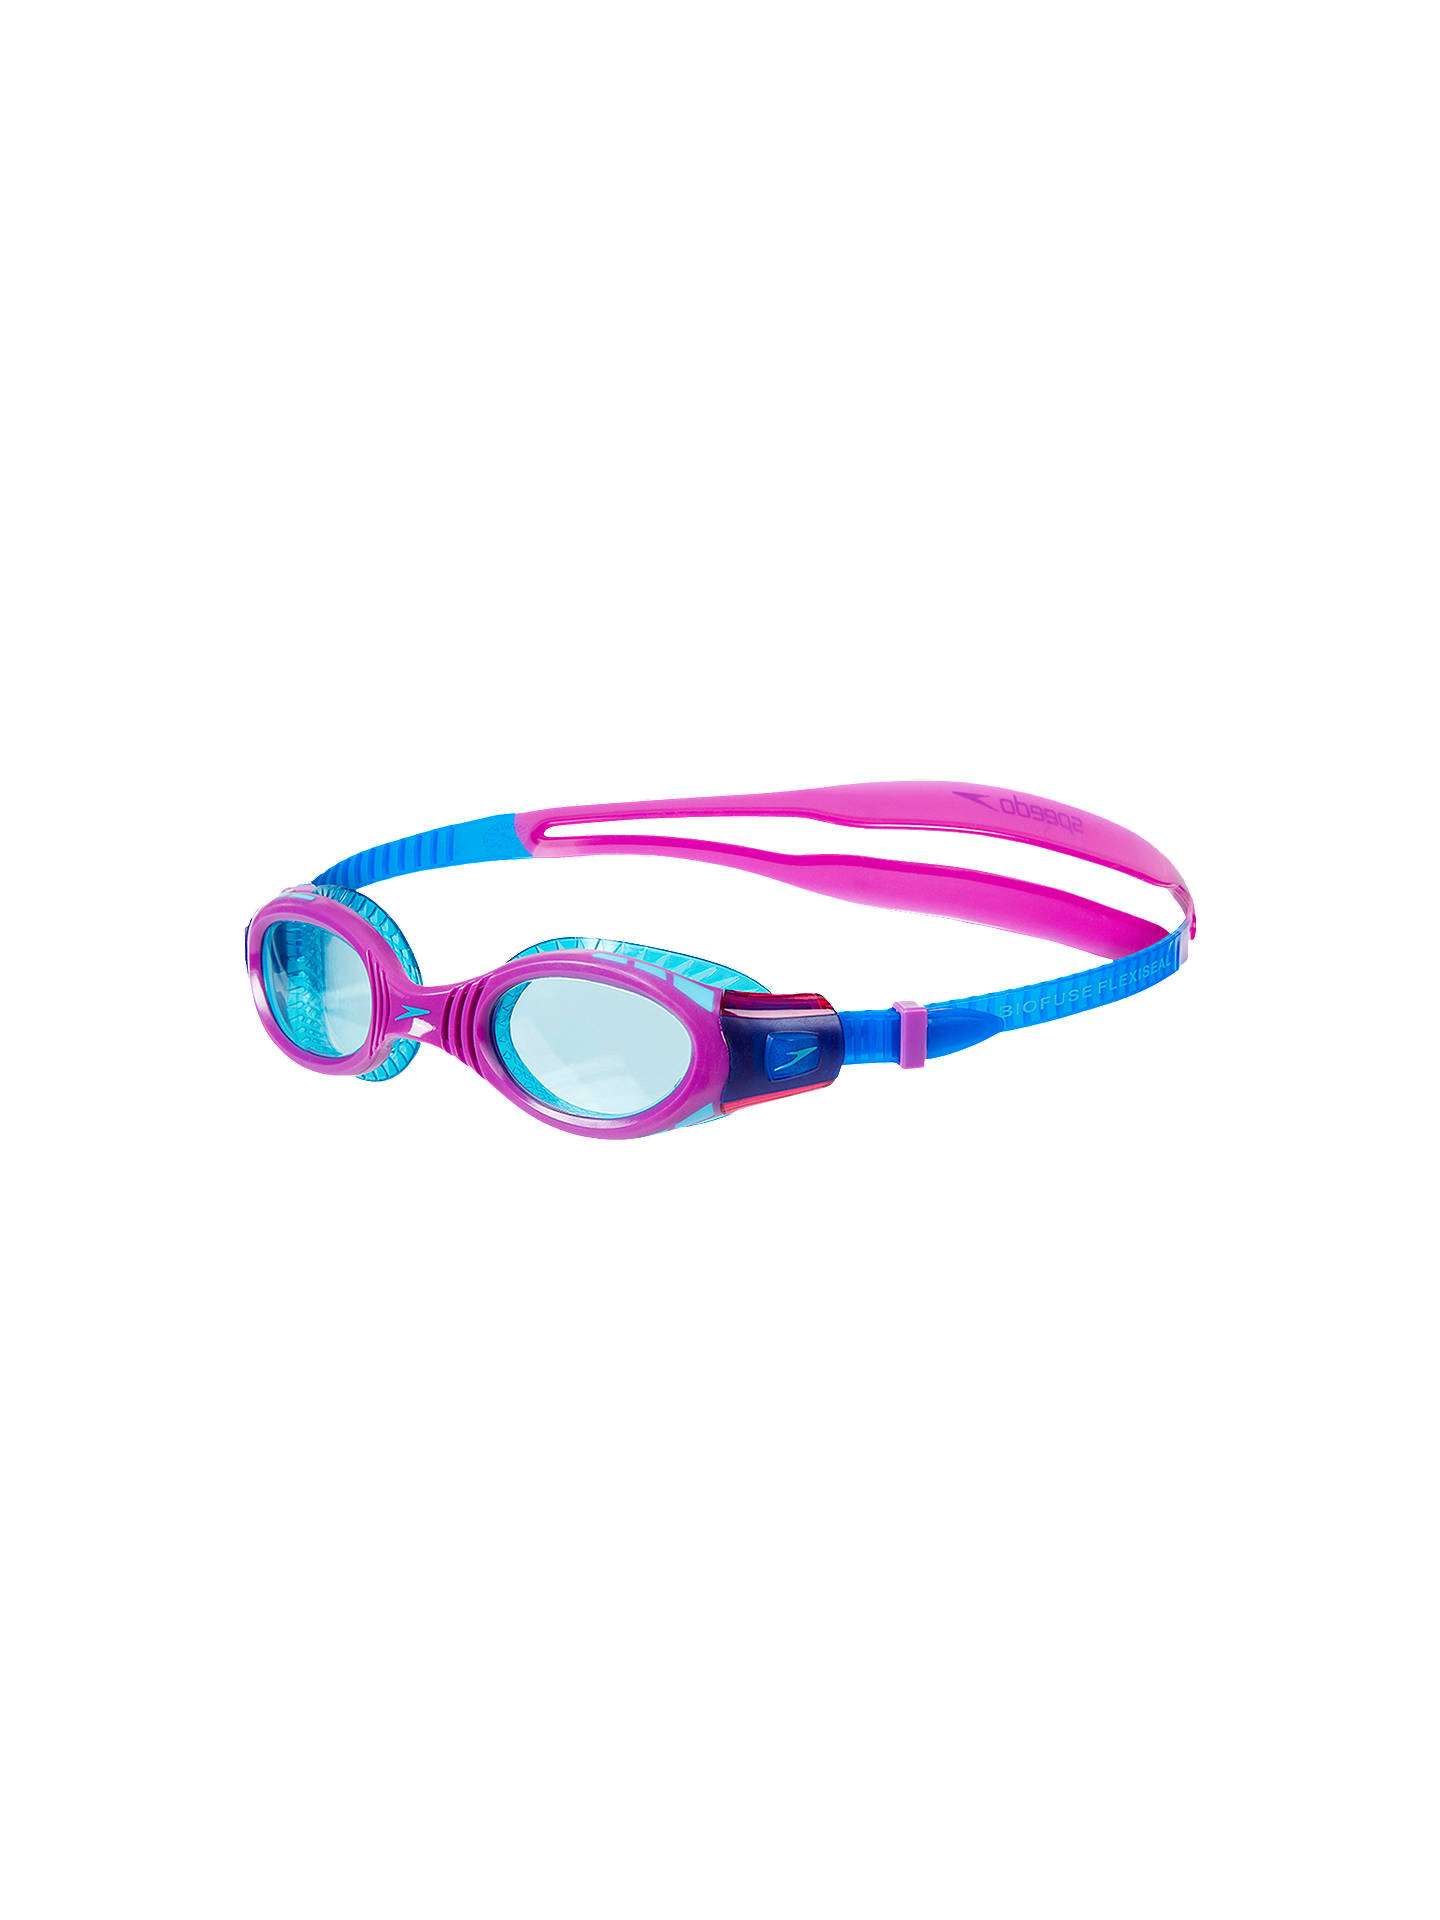 Speedo Junior Futura Biofuse Flexiseal Swimming Goggles at John ... 108300e574dd